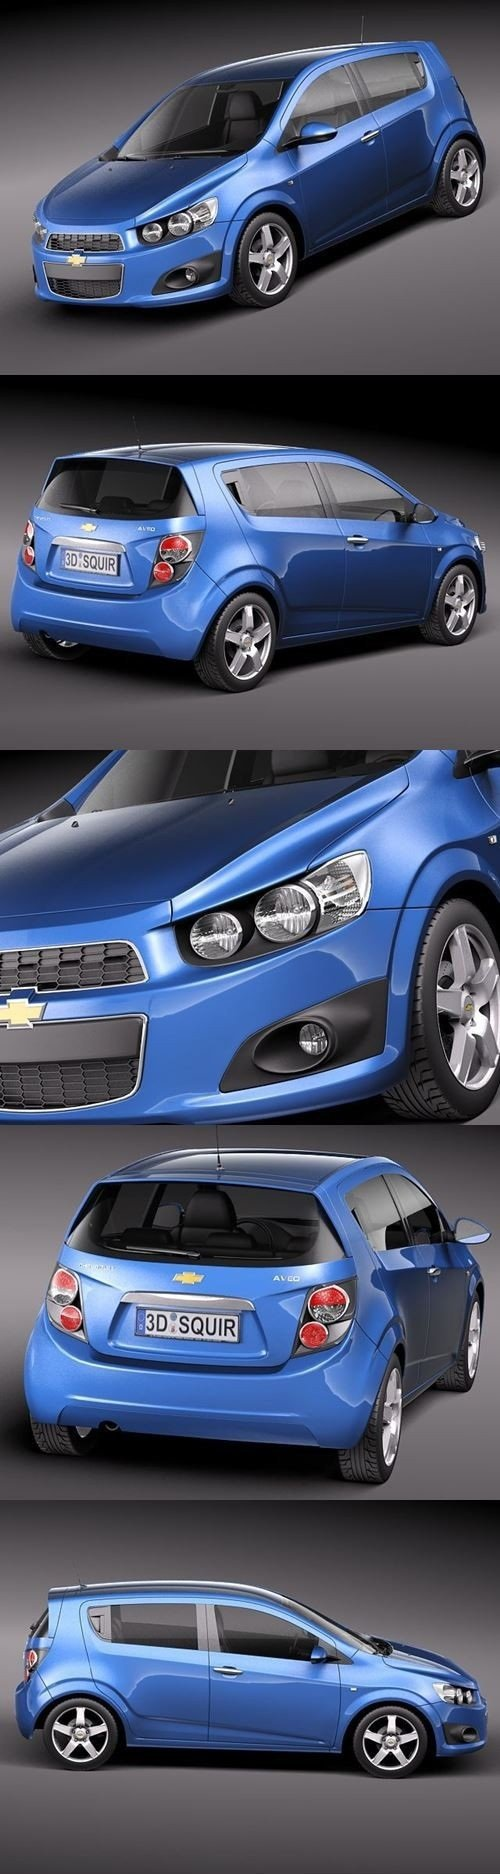 Chevrolet Sonic Aveo 2012 Compact Hatchback 3D Model